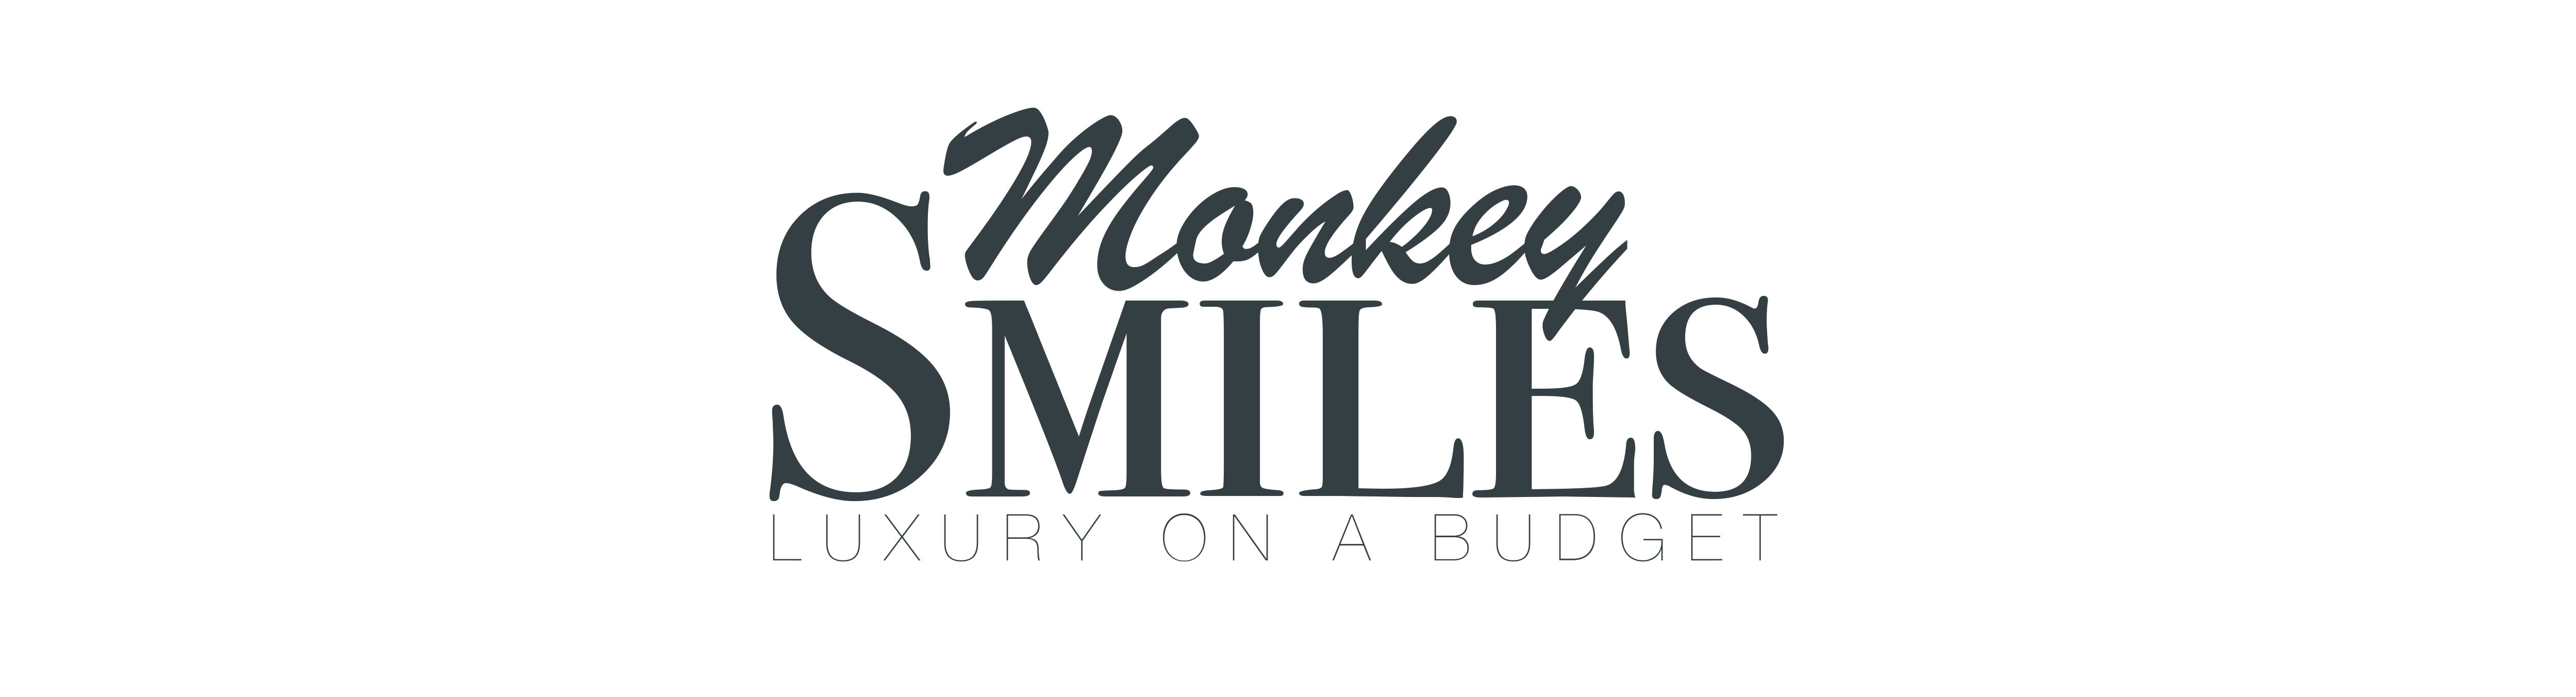 MonkeySmiles